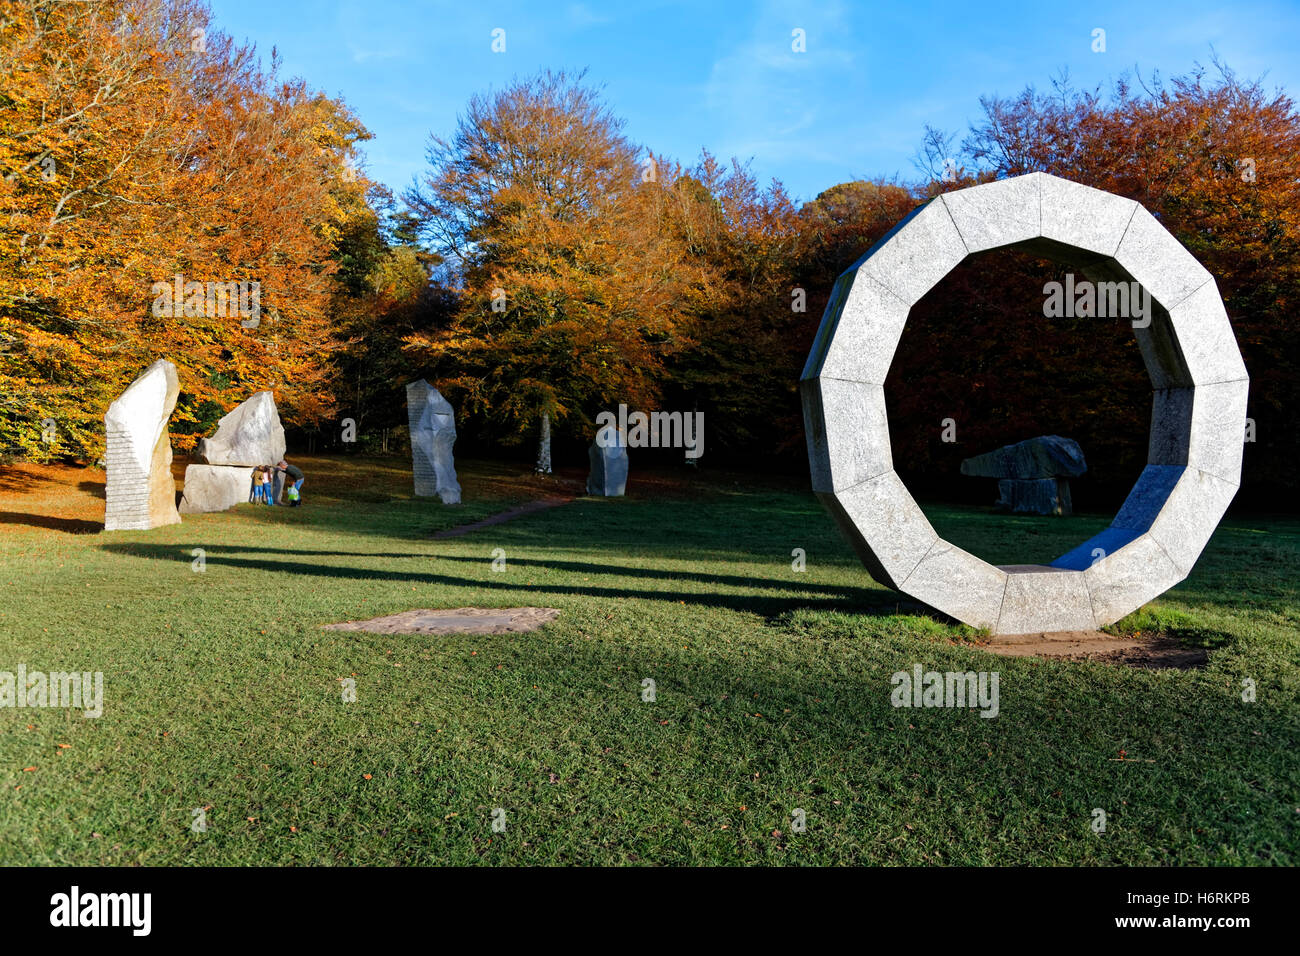 Heaven's Gate, Longleat Safari & Adventure Park, Wiltshire, UK. 31st October 2016. Autumn colours at Heaven's - Stock Image